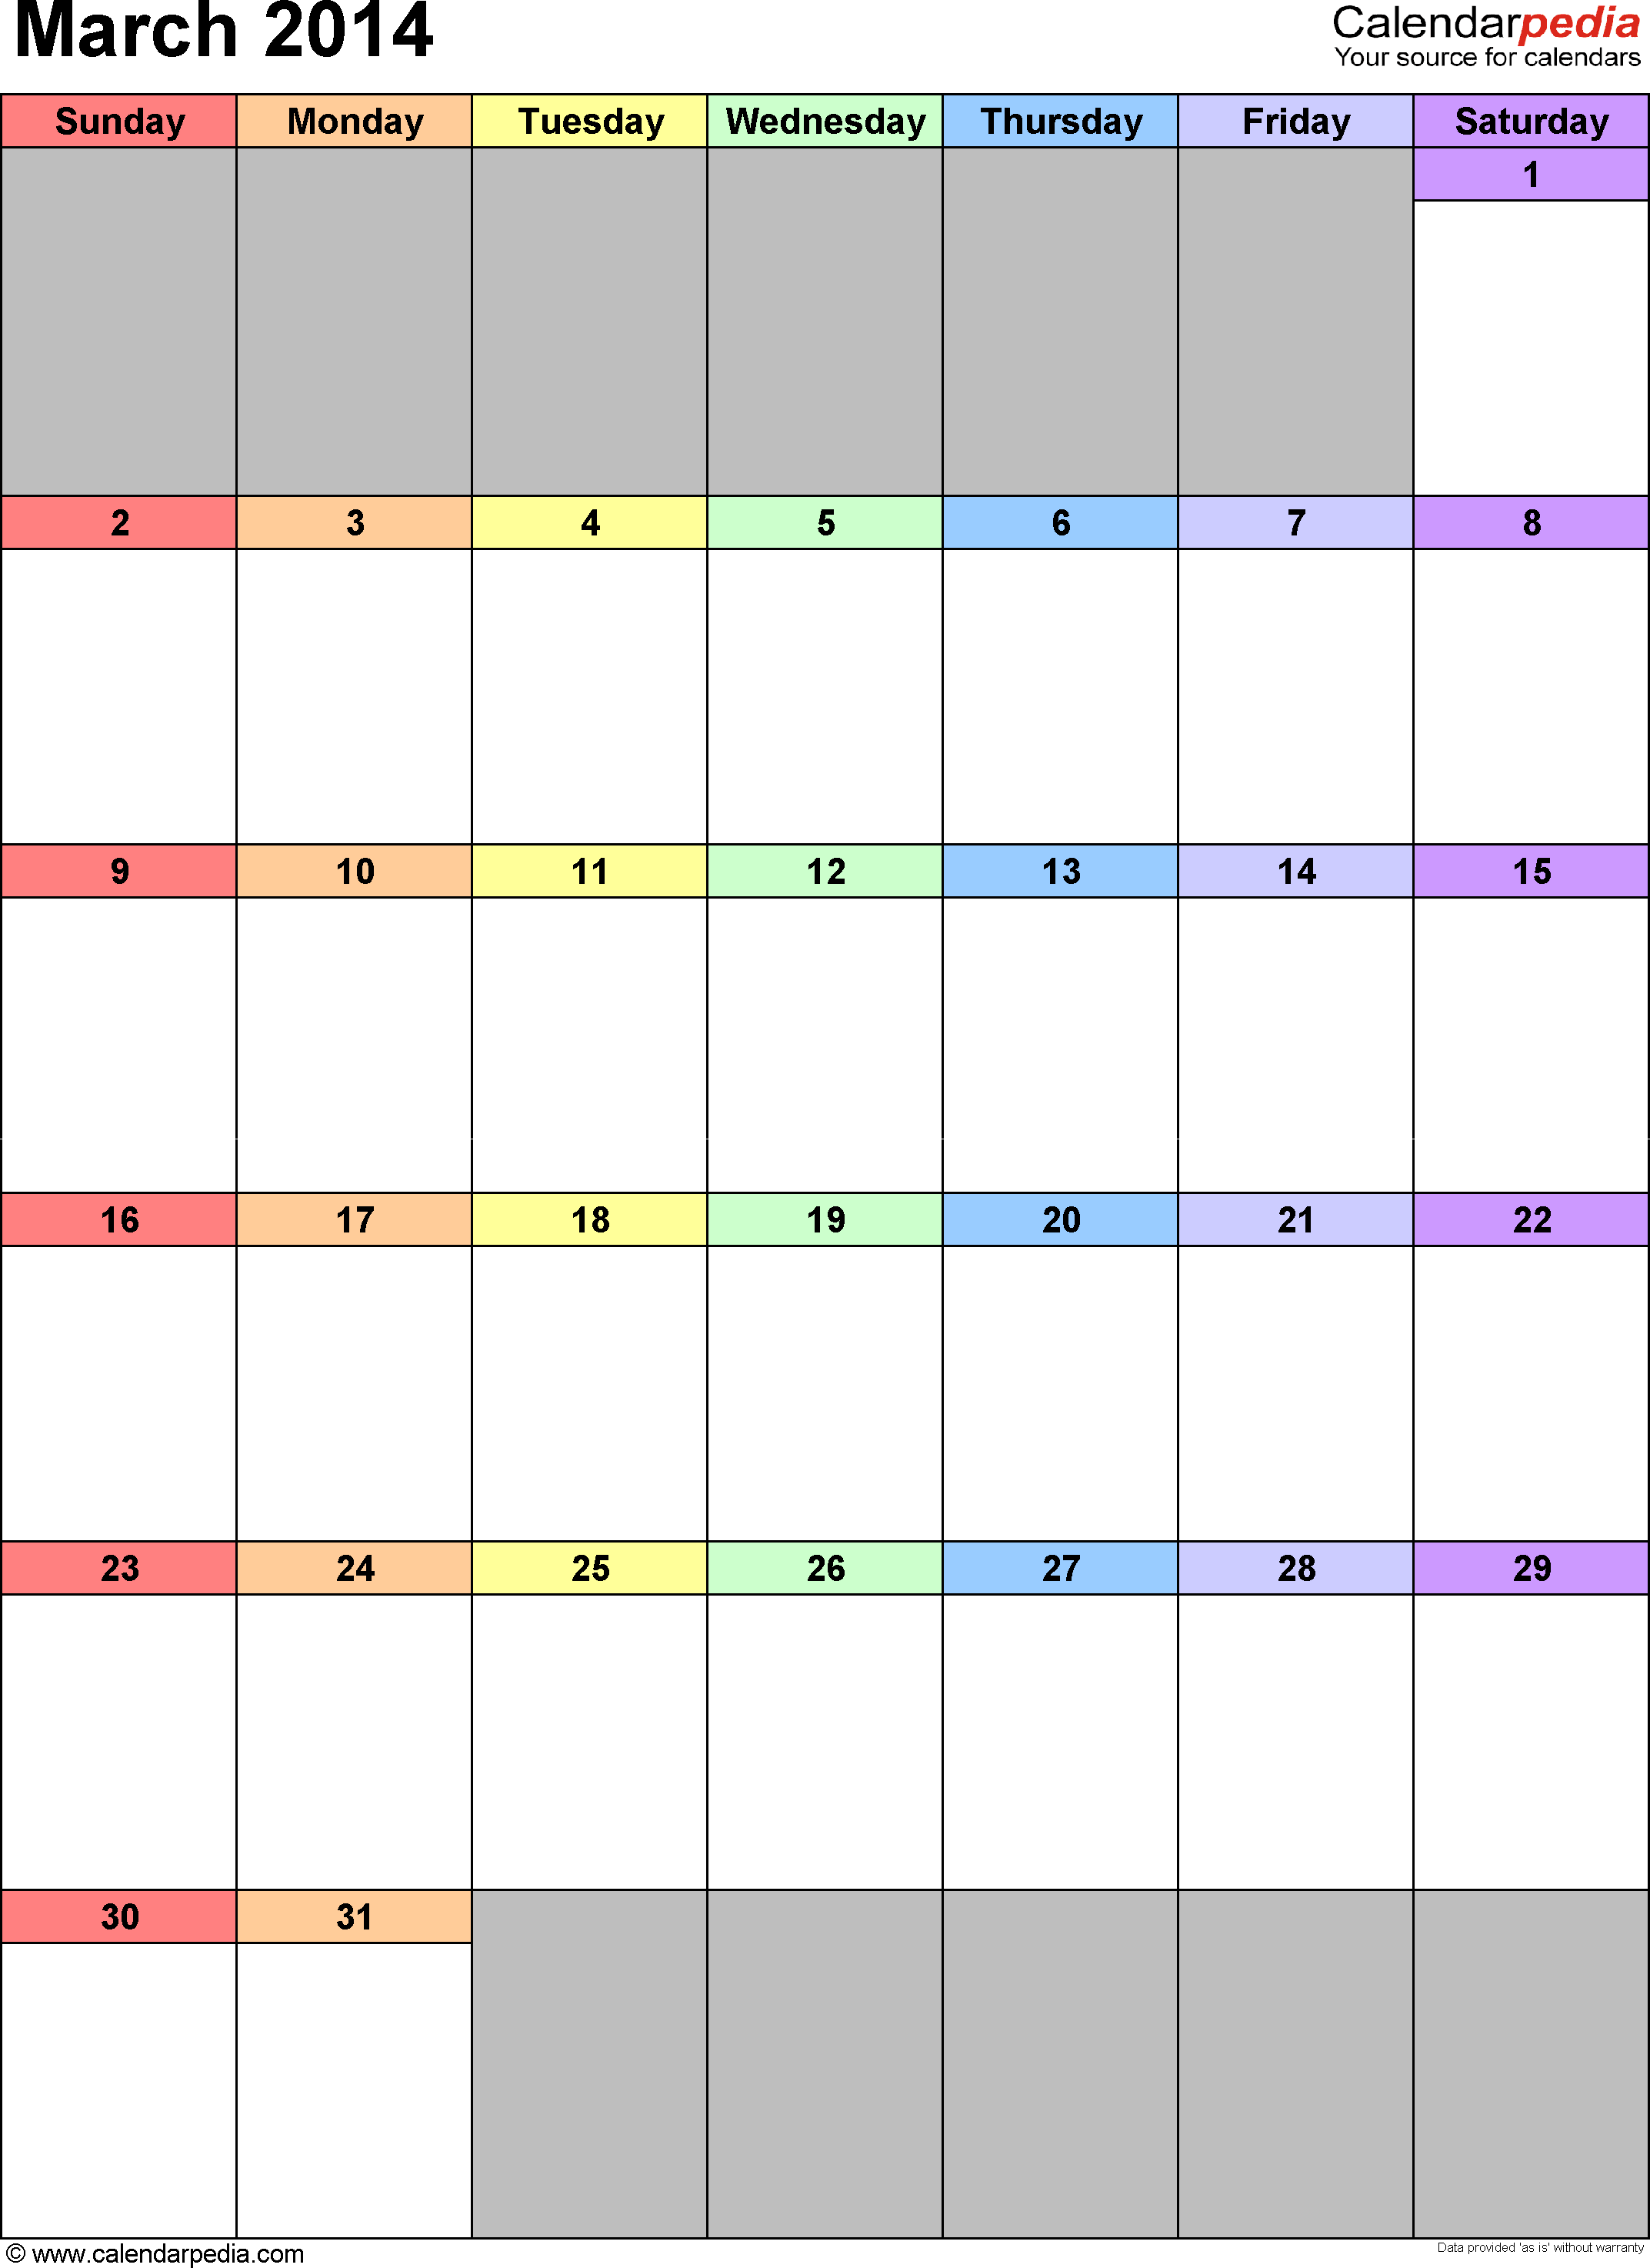 March 2014 calendar as printable Word, Excel & PDF templates